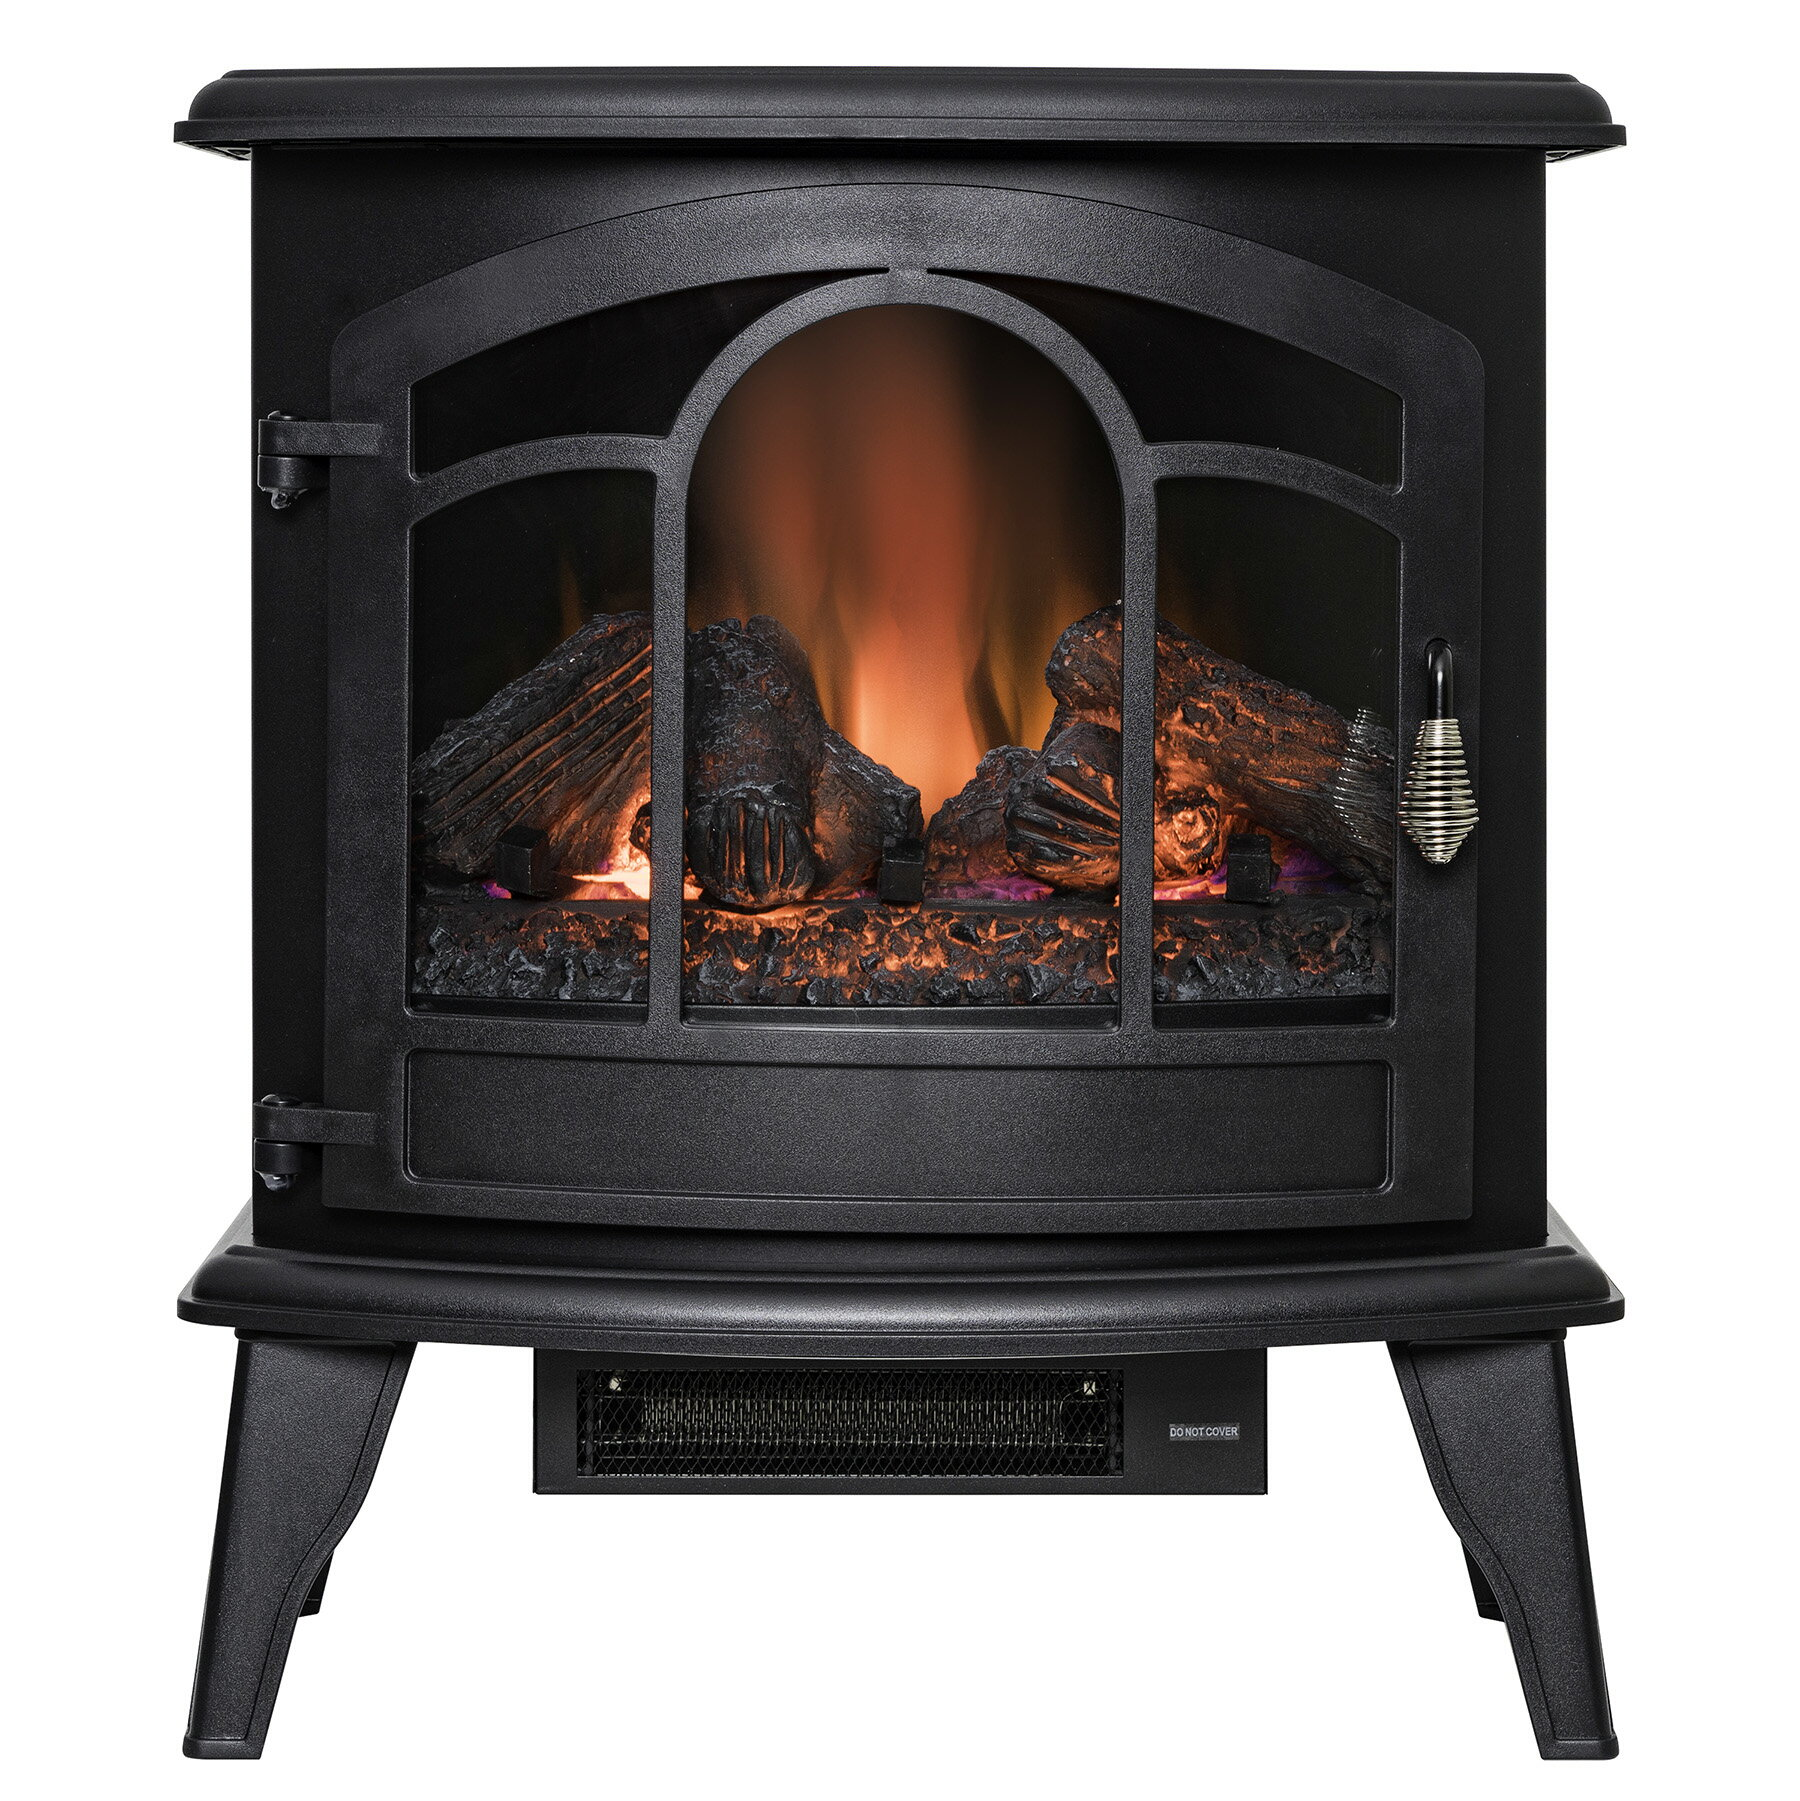 "AKDY 20"" Black Finish Freestanding Portable Electric Fireplace Firebox w/ Logs & Remote 0"